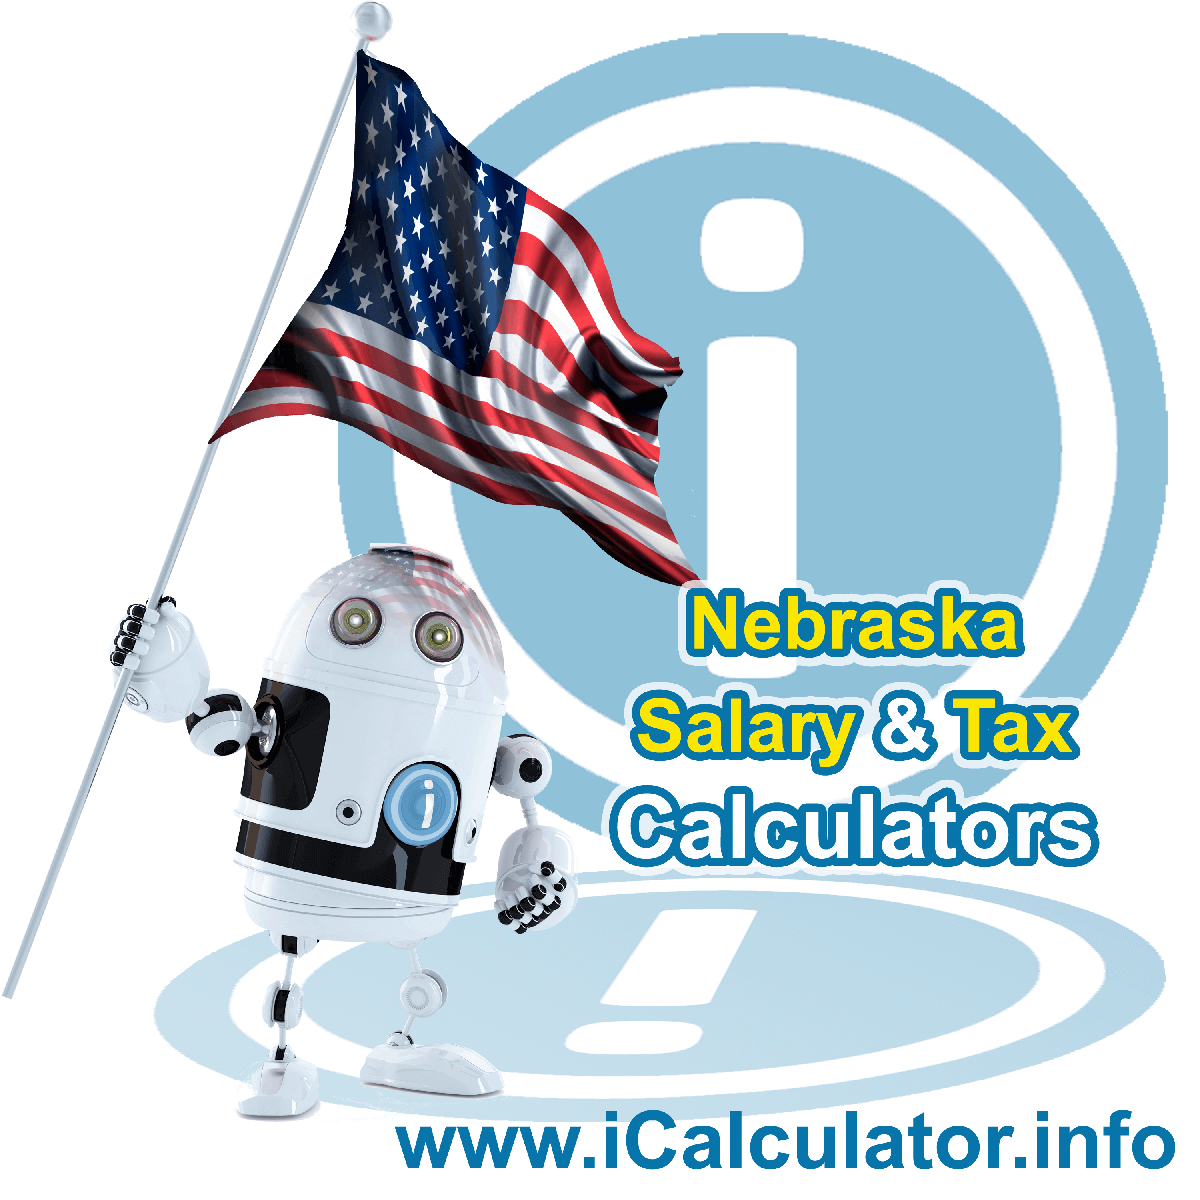 Nebraska Salary Calculator 2021 | iCalculator™ | The Nebraska Salary Calculator allows you to quickly calculate your salary after tax including Nebraska State Tax, Federal State Tax, Medicare Deductions, Social Security, Capital Gains and other income tax and salary deductions complete with supporting Nebraska state tax tables